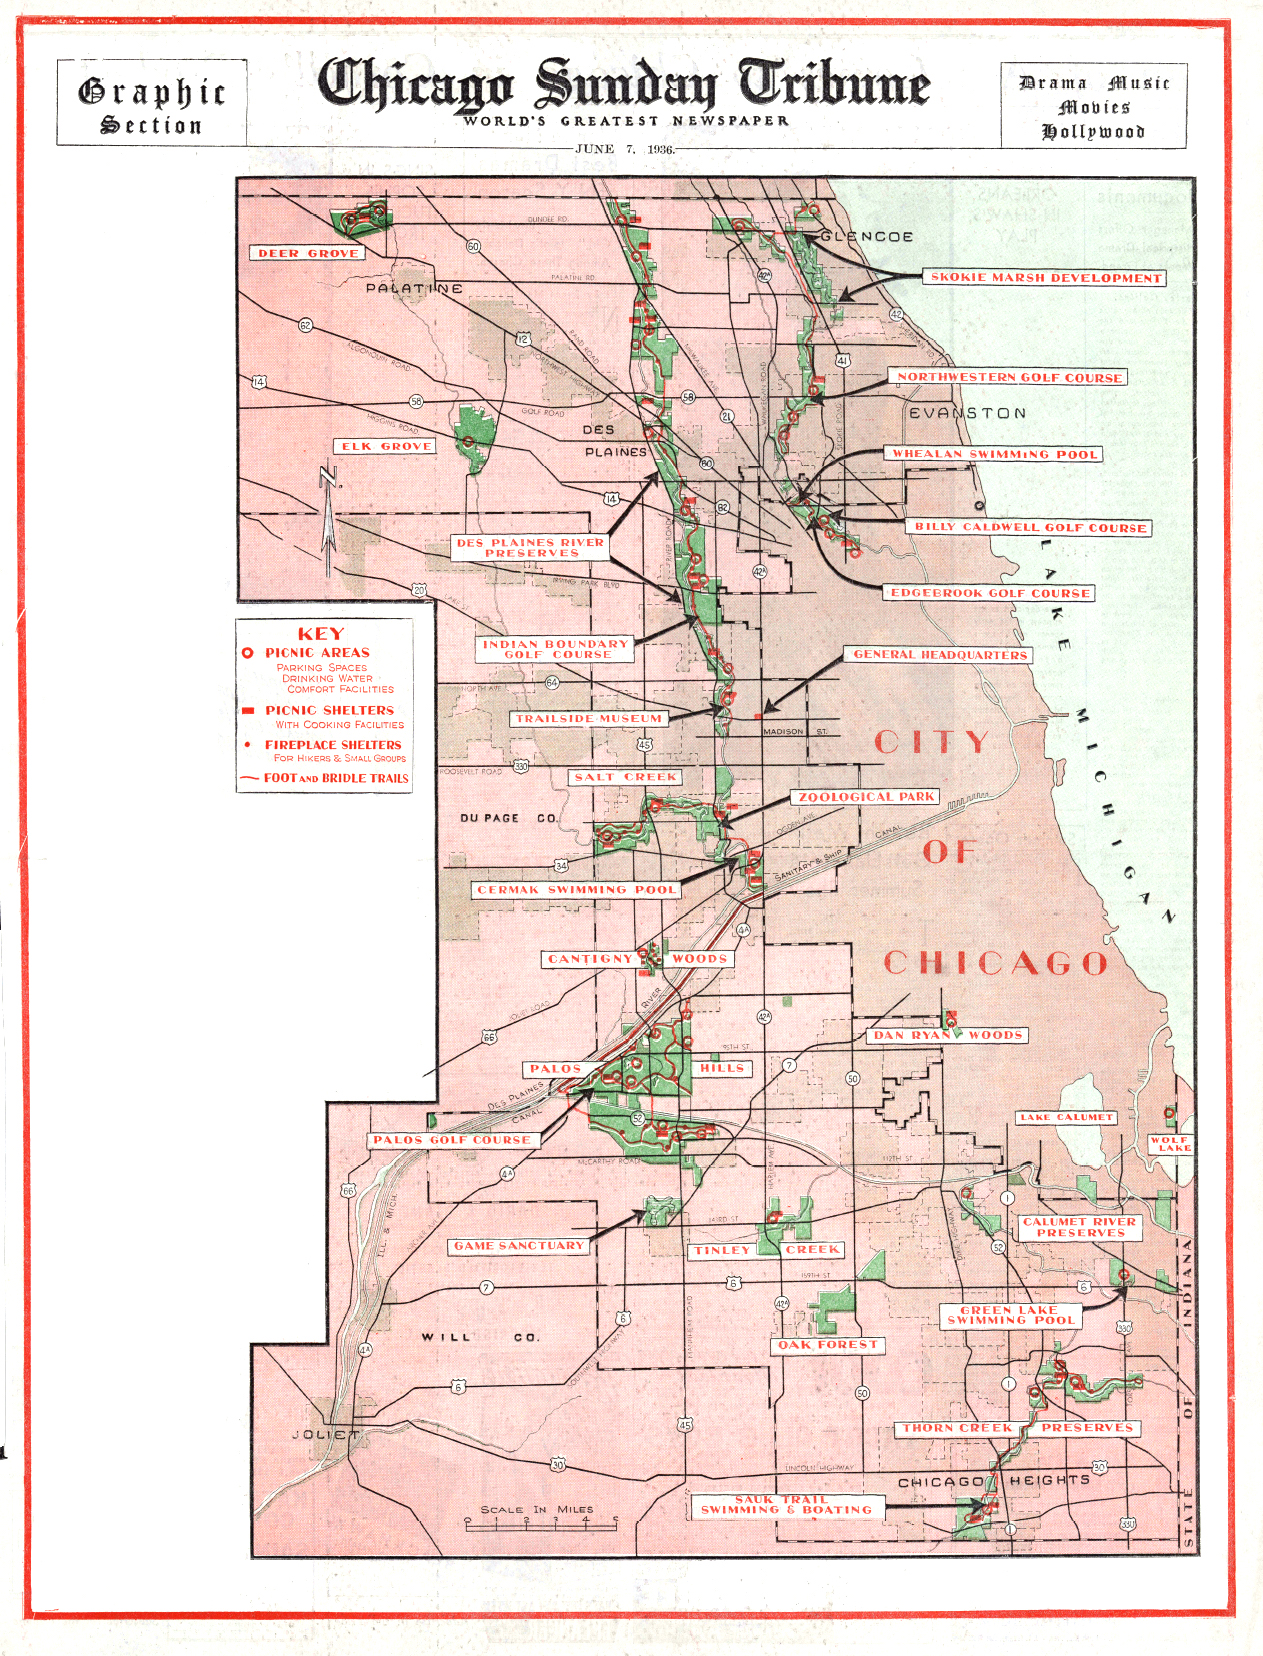 Chicagos Forest Preserves - Chicago map by county